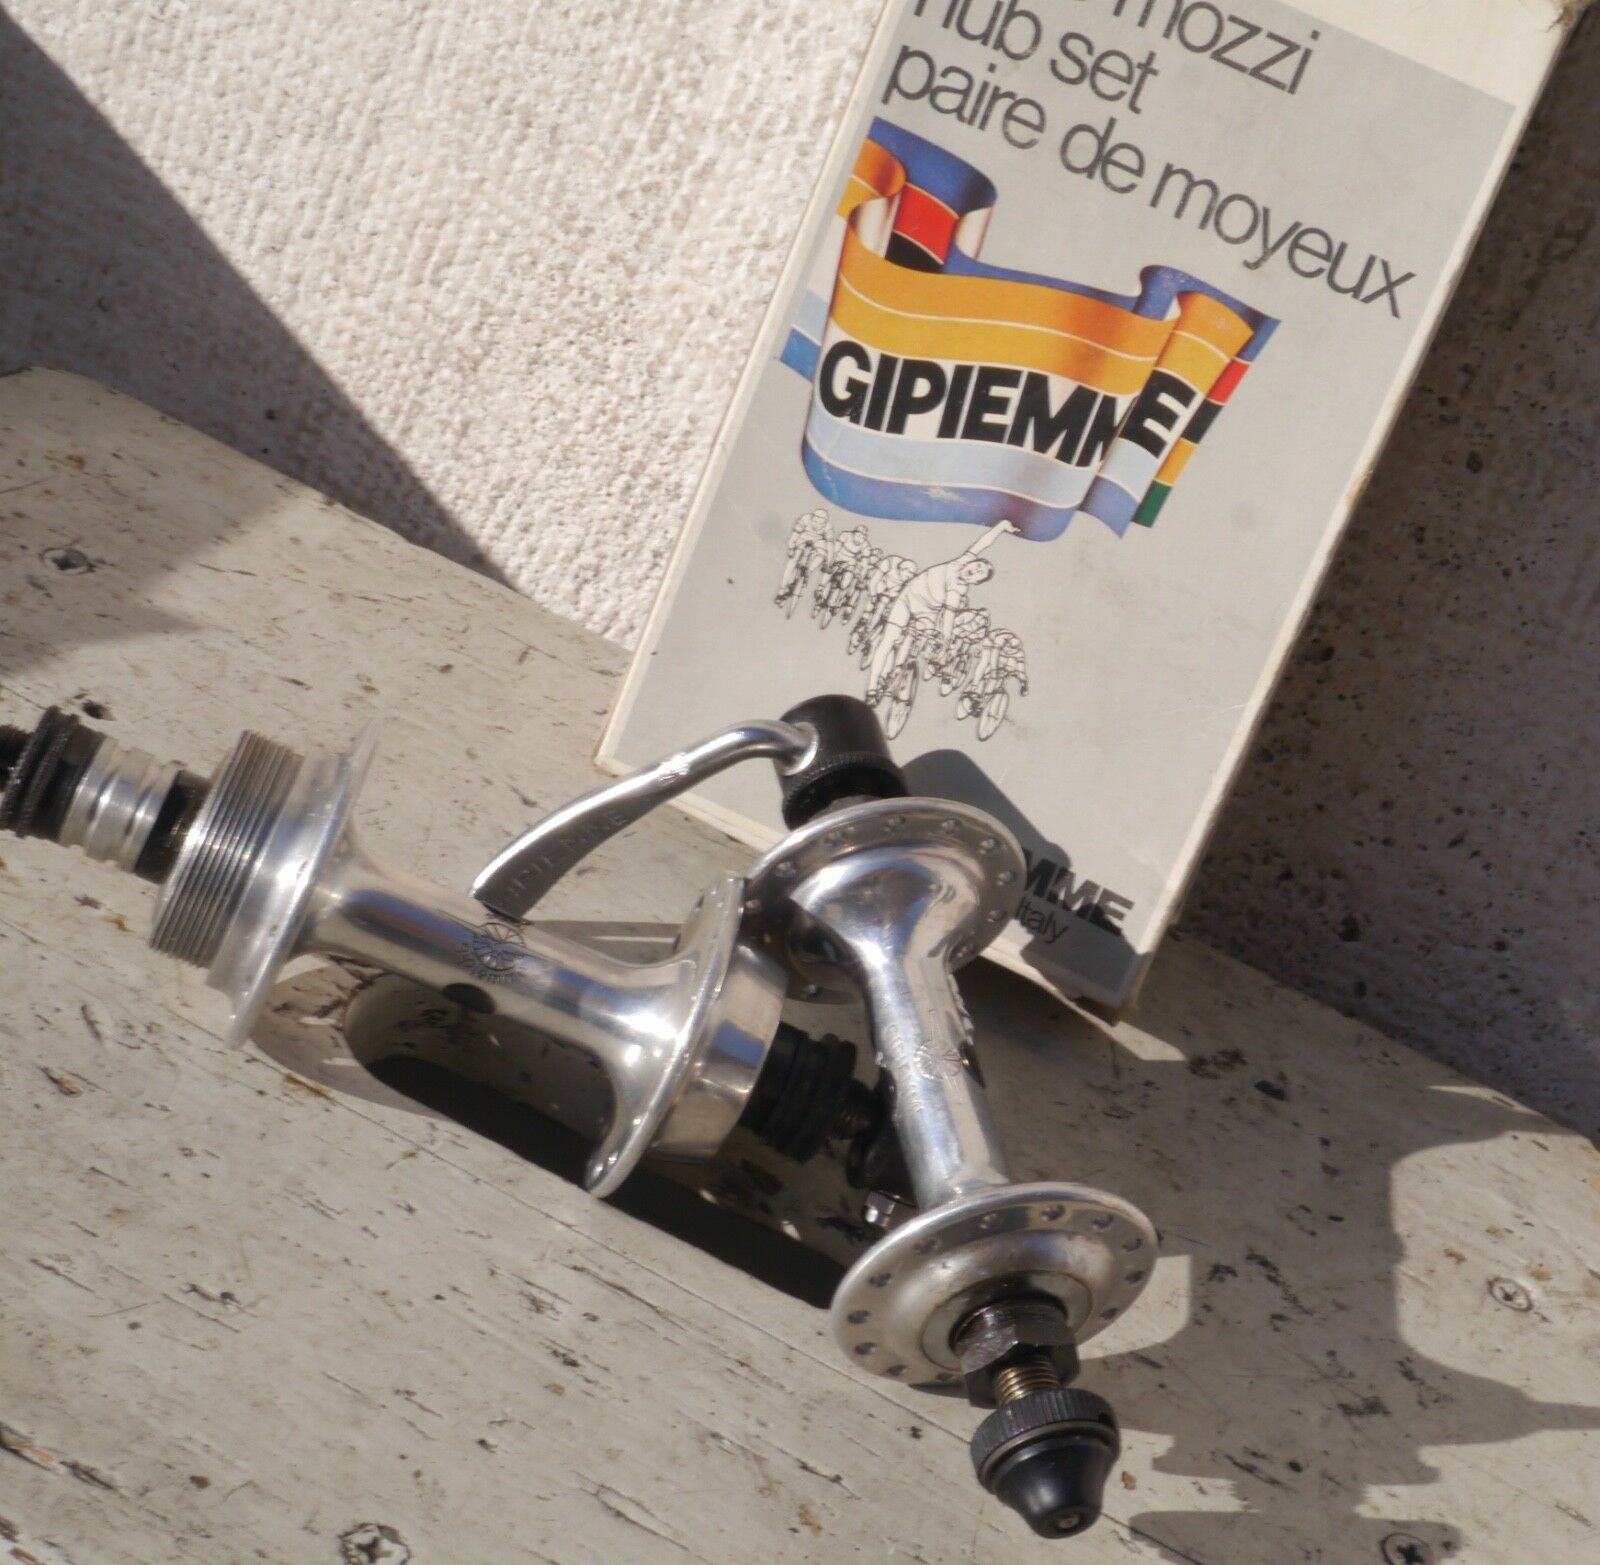 NIB Gipiemme Special  28 Glory Road Bike Small Flange Hub Set Front & Rear Vintage  70% off cheap